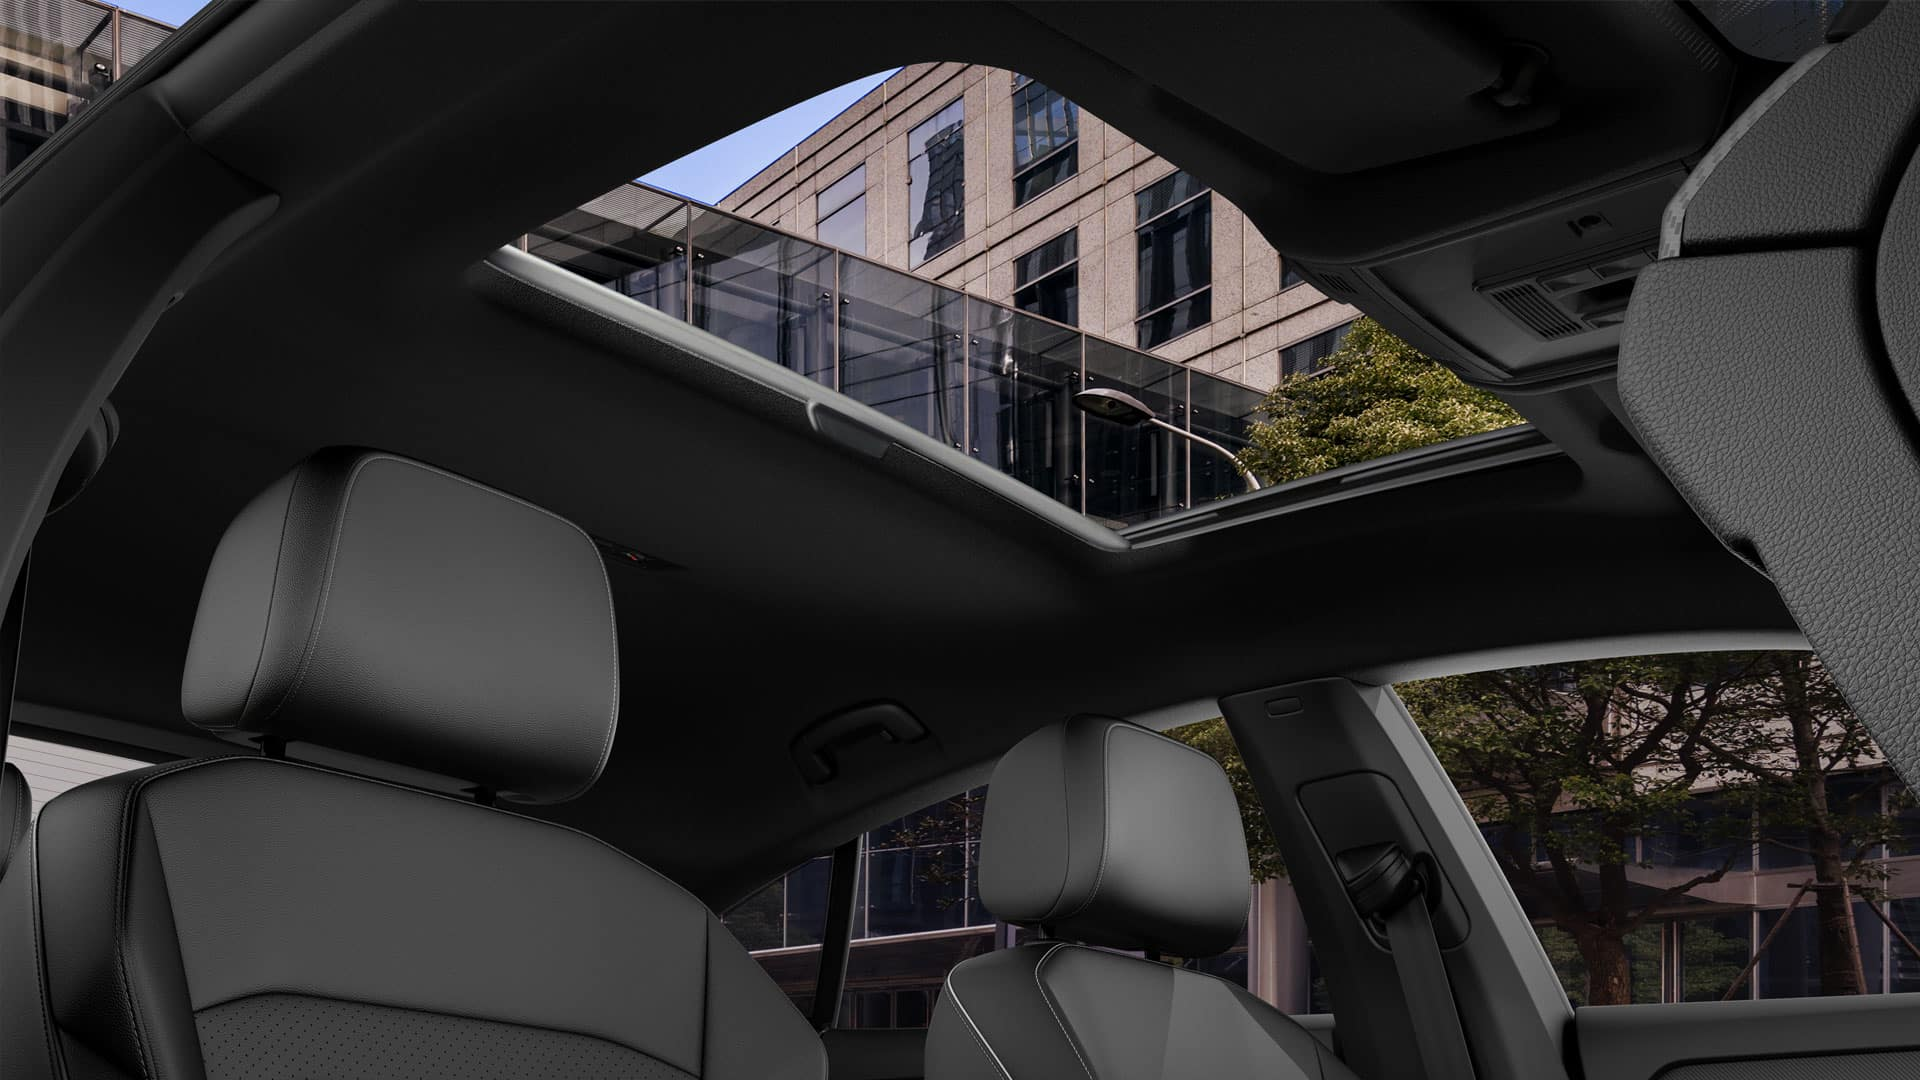 Arteon panoramic sunroof